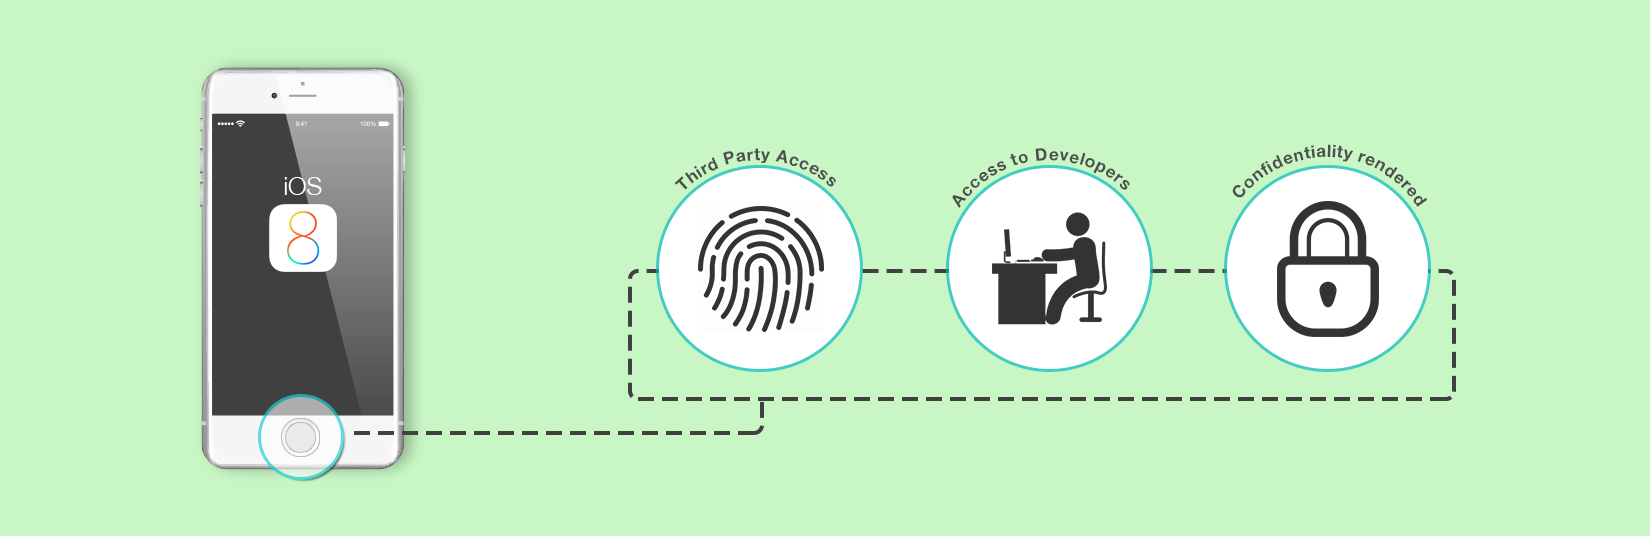 Apple Grants The Access of Touch Id to Third-Party App Developers